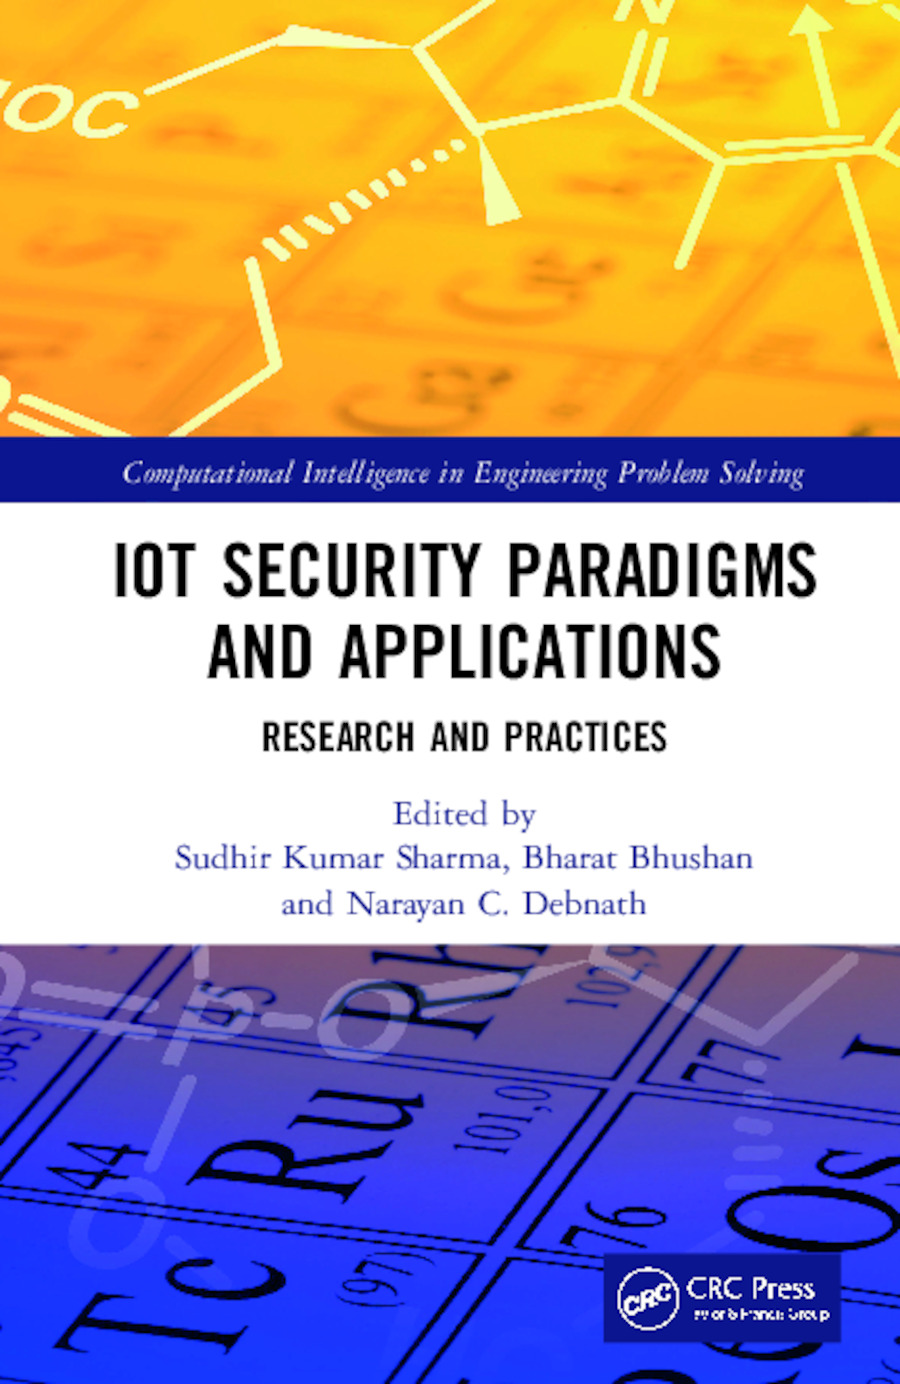 Cybersecurity Management within the Internet of Things